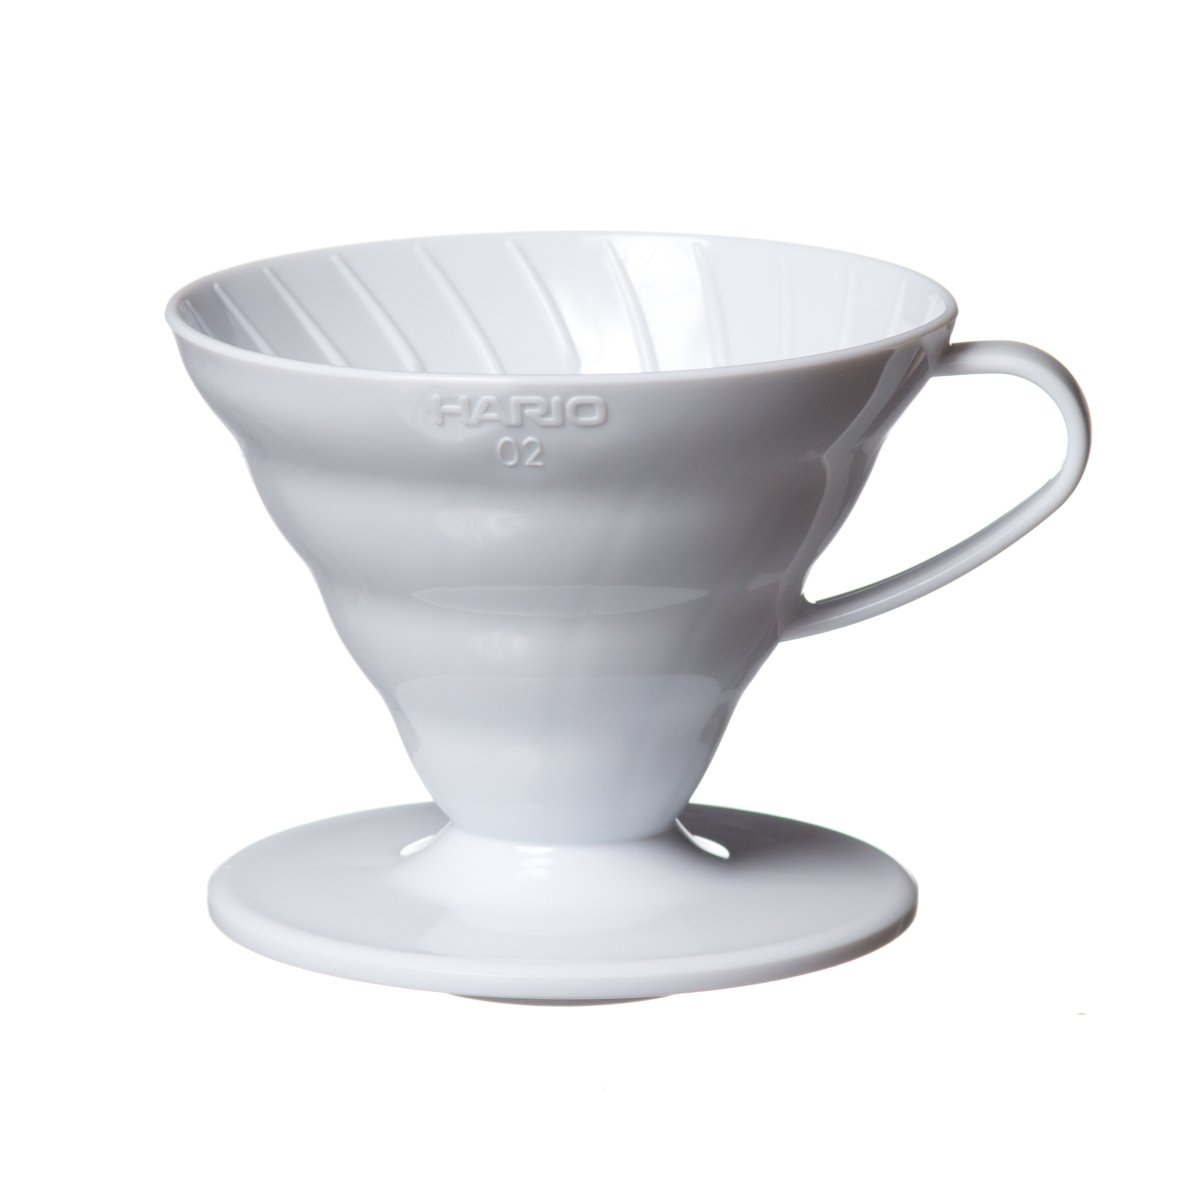 v60 for brewing filter coffee